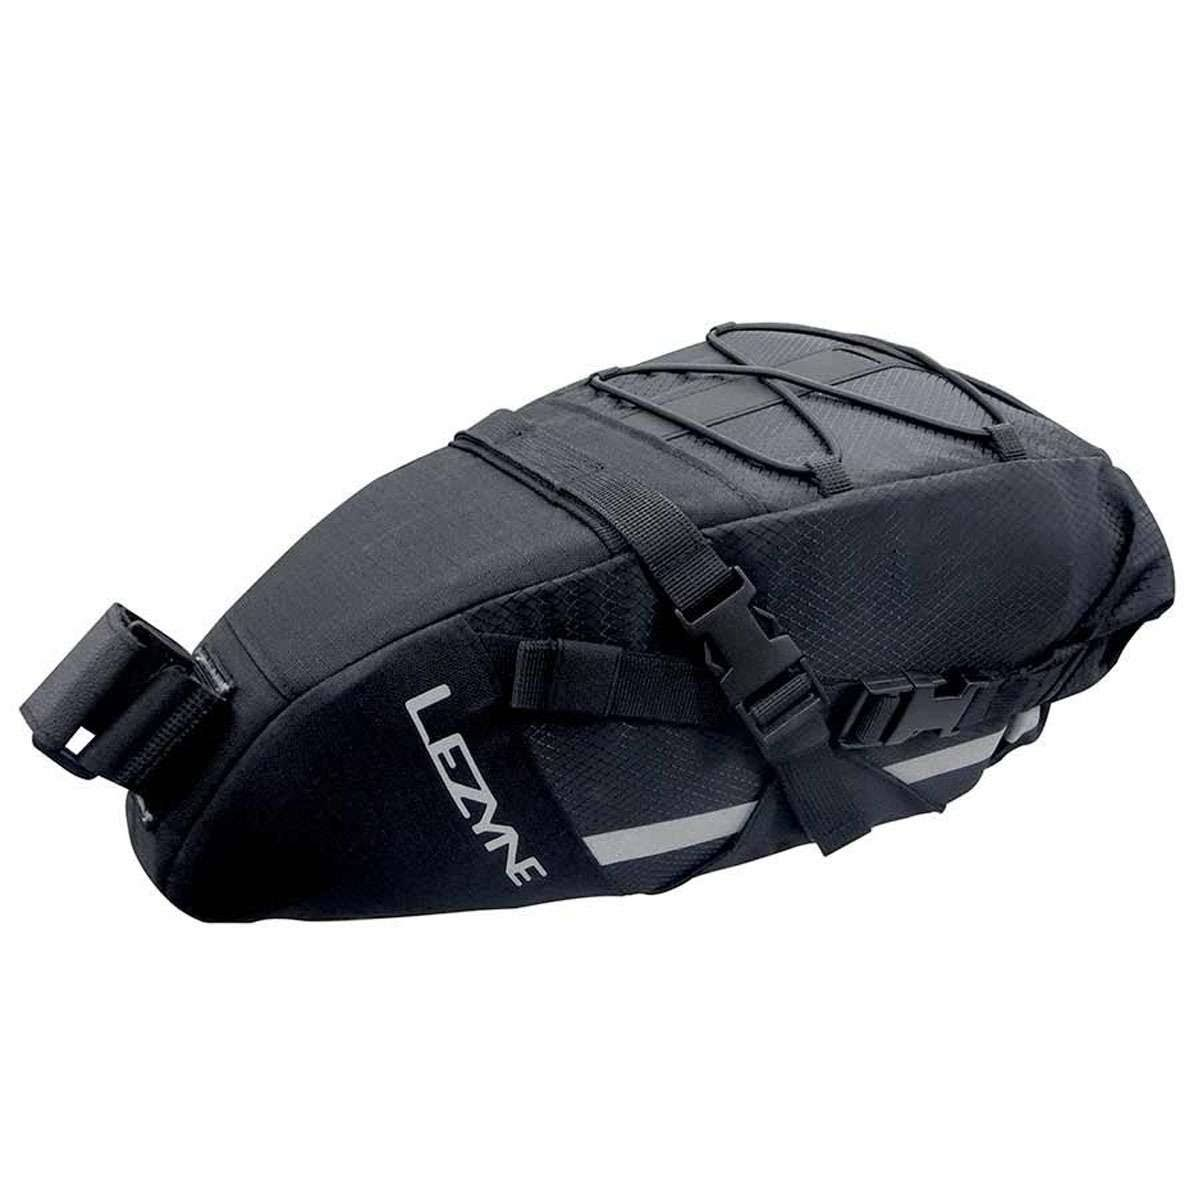 Lezyne XL Caddy Seat Bag